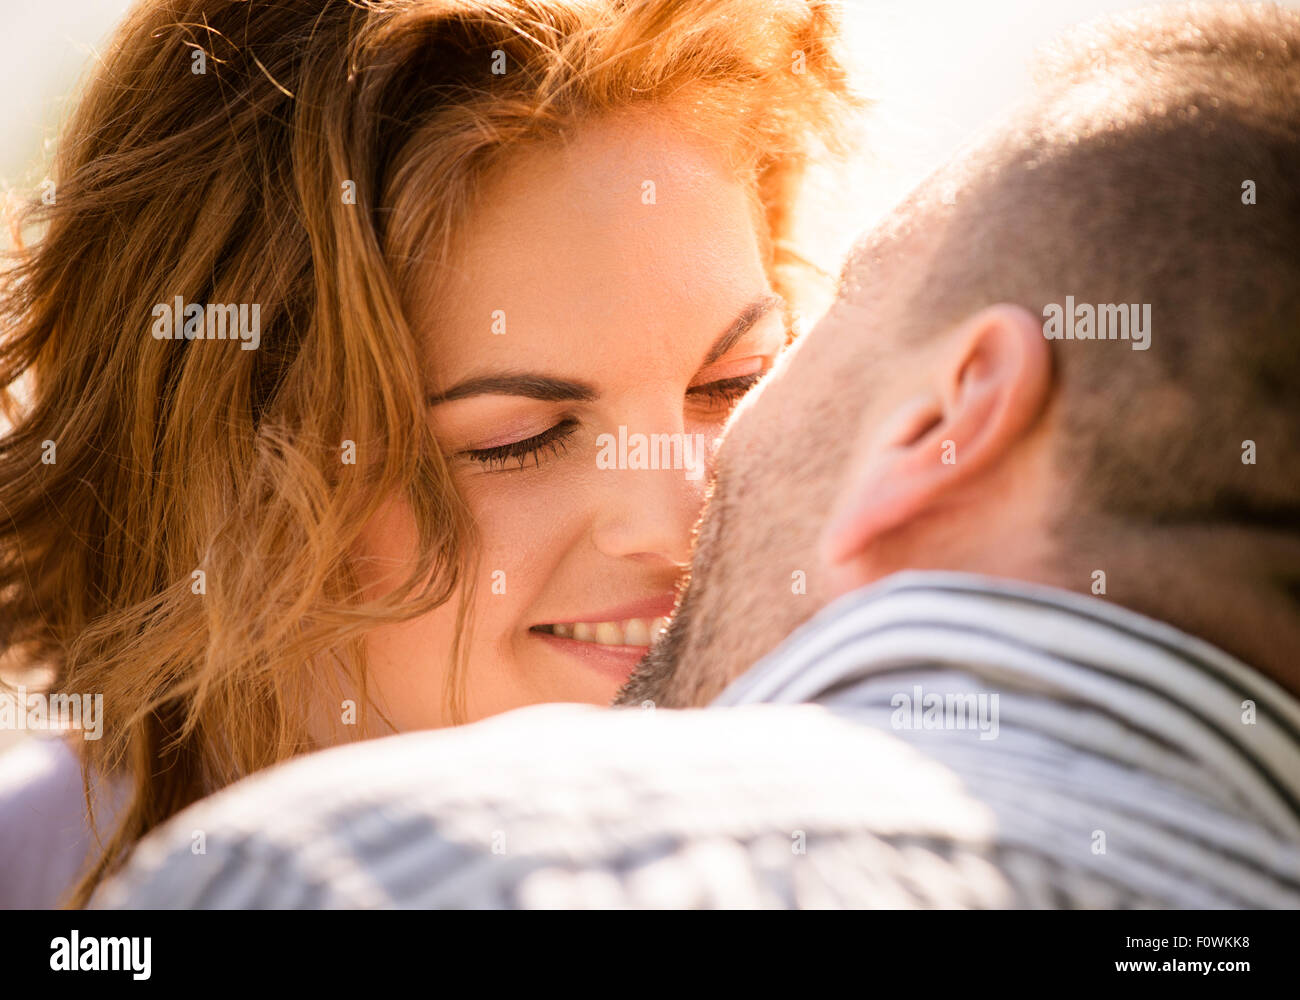 Candid close up photo of man kissing young smiling woman - Stock Image